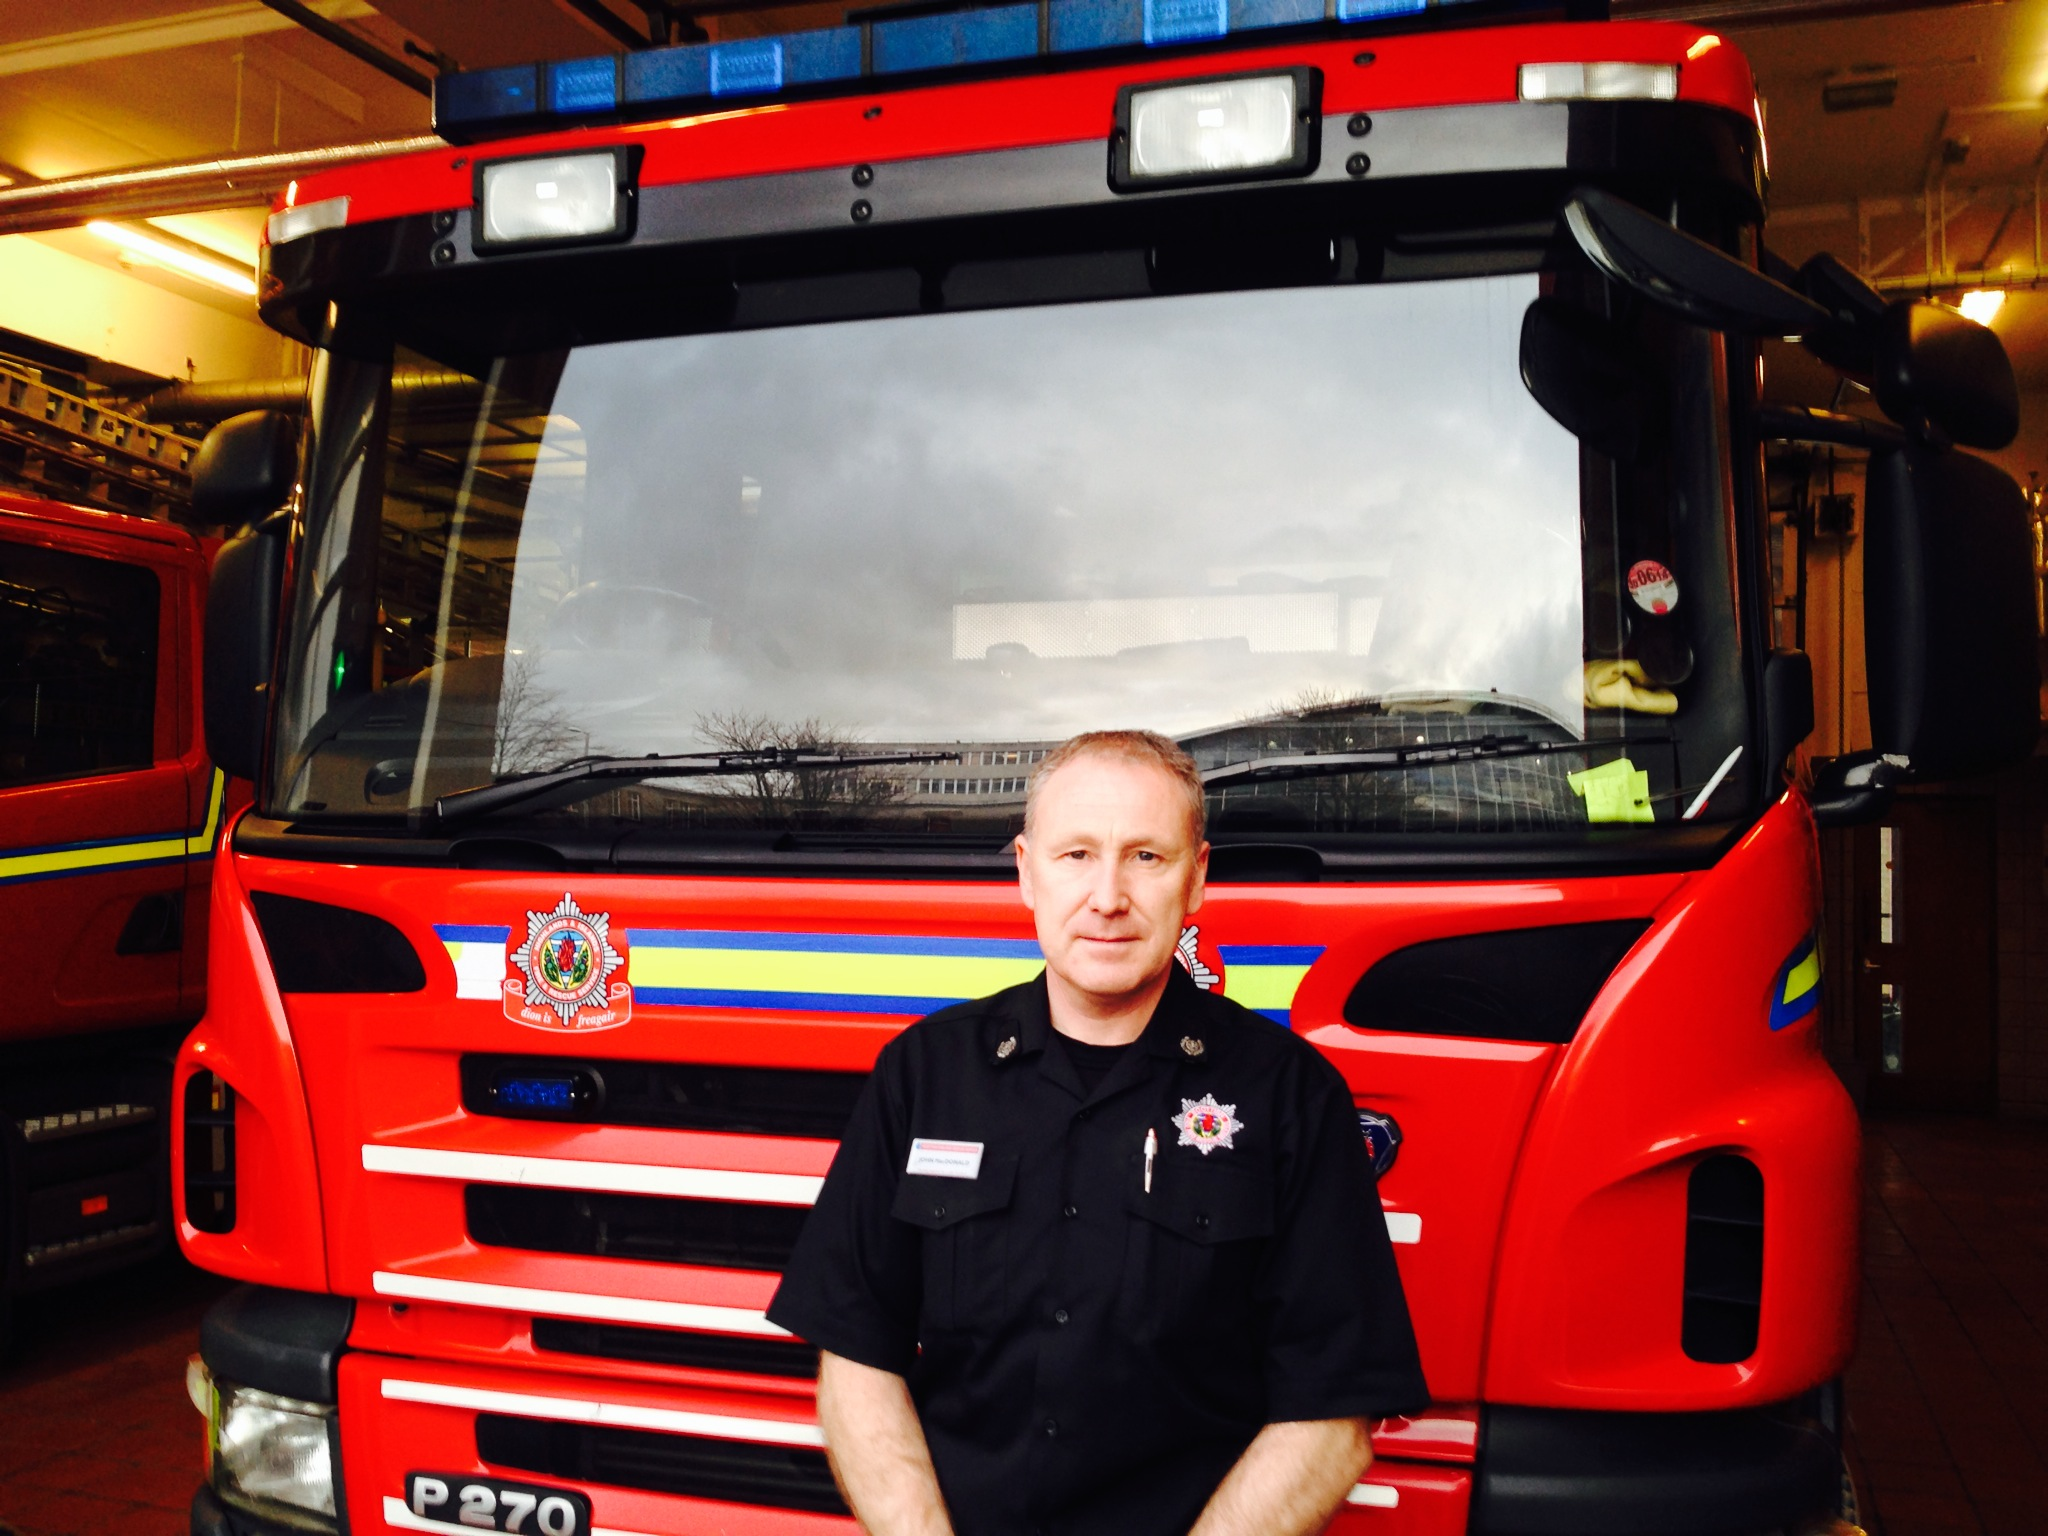 Highland sees a welcome reduction in number of unwanted fire alarm signals (UFAS)